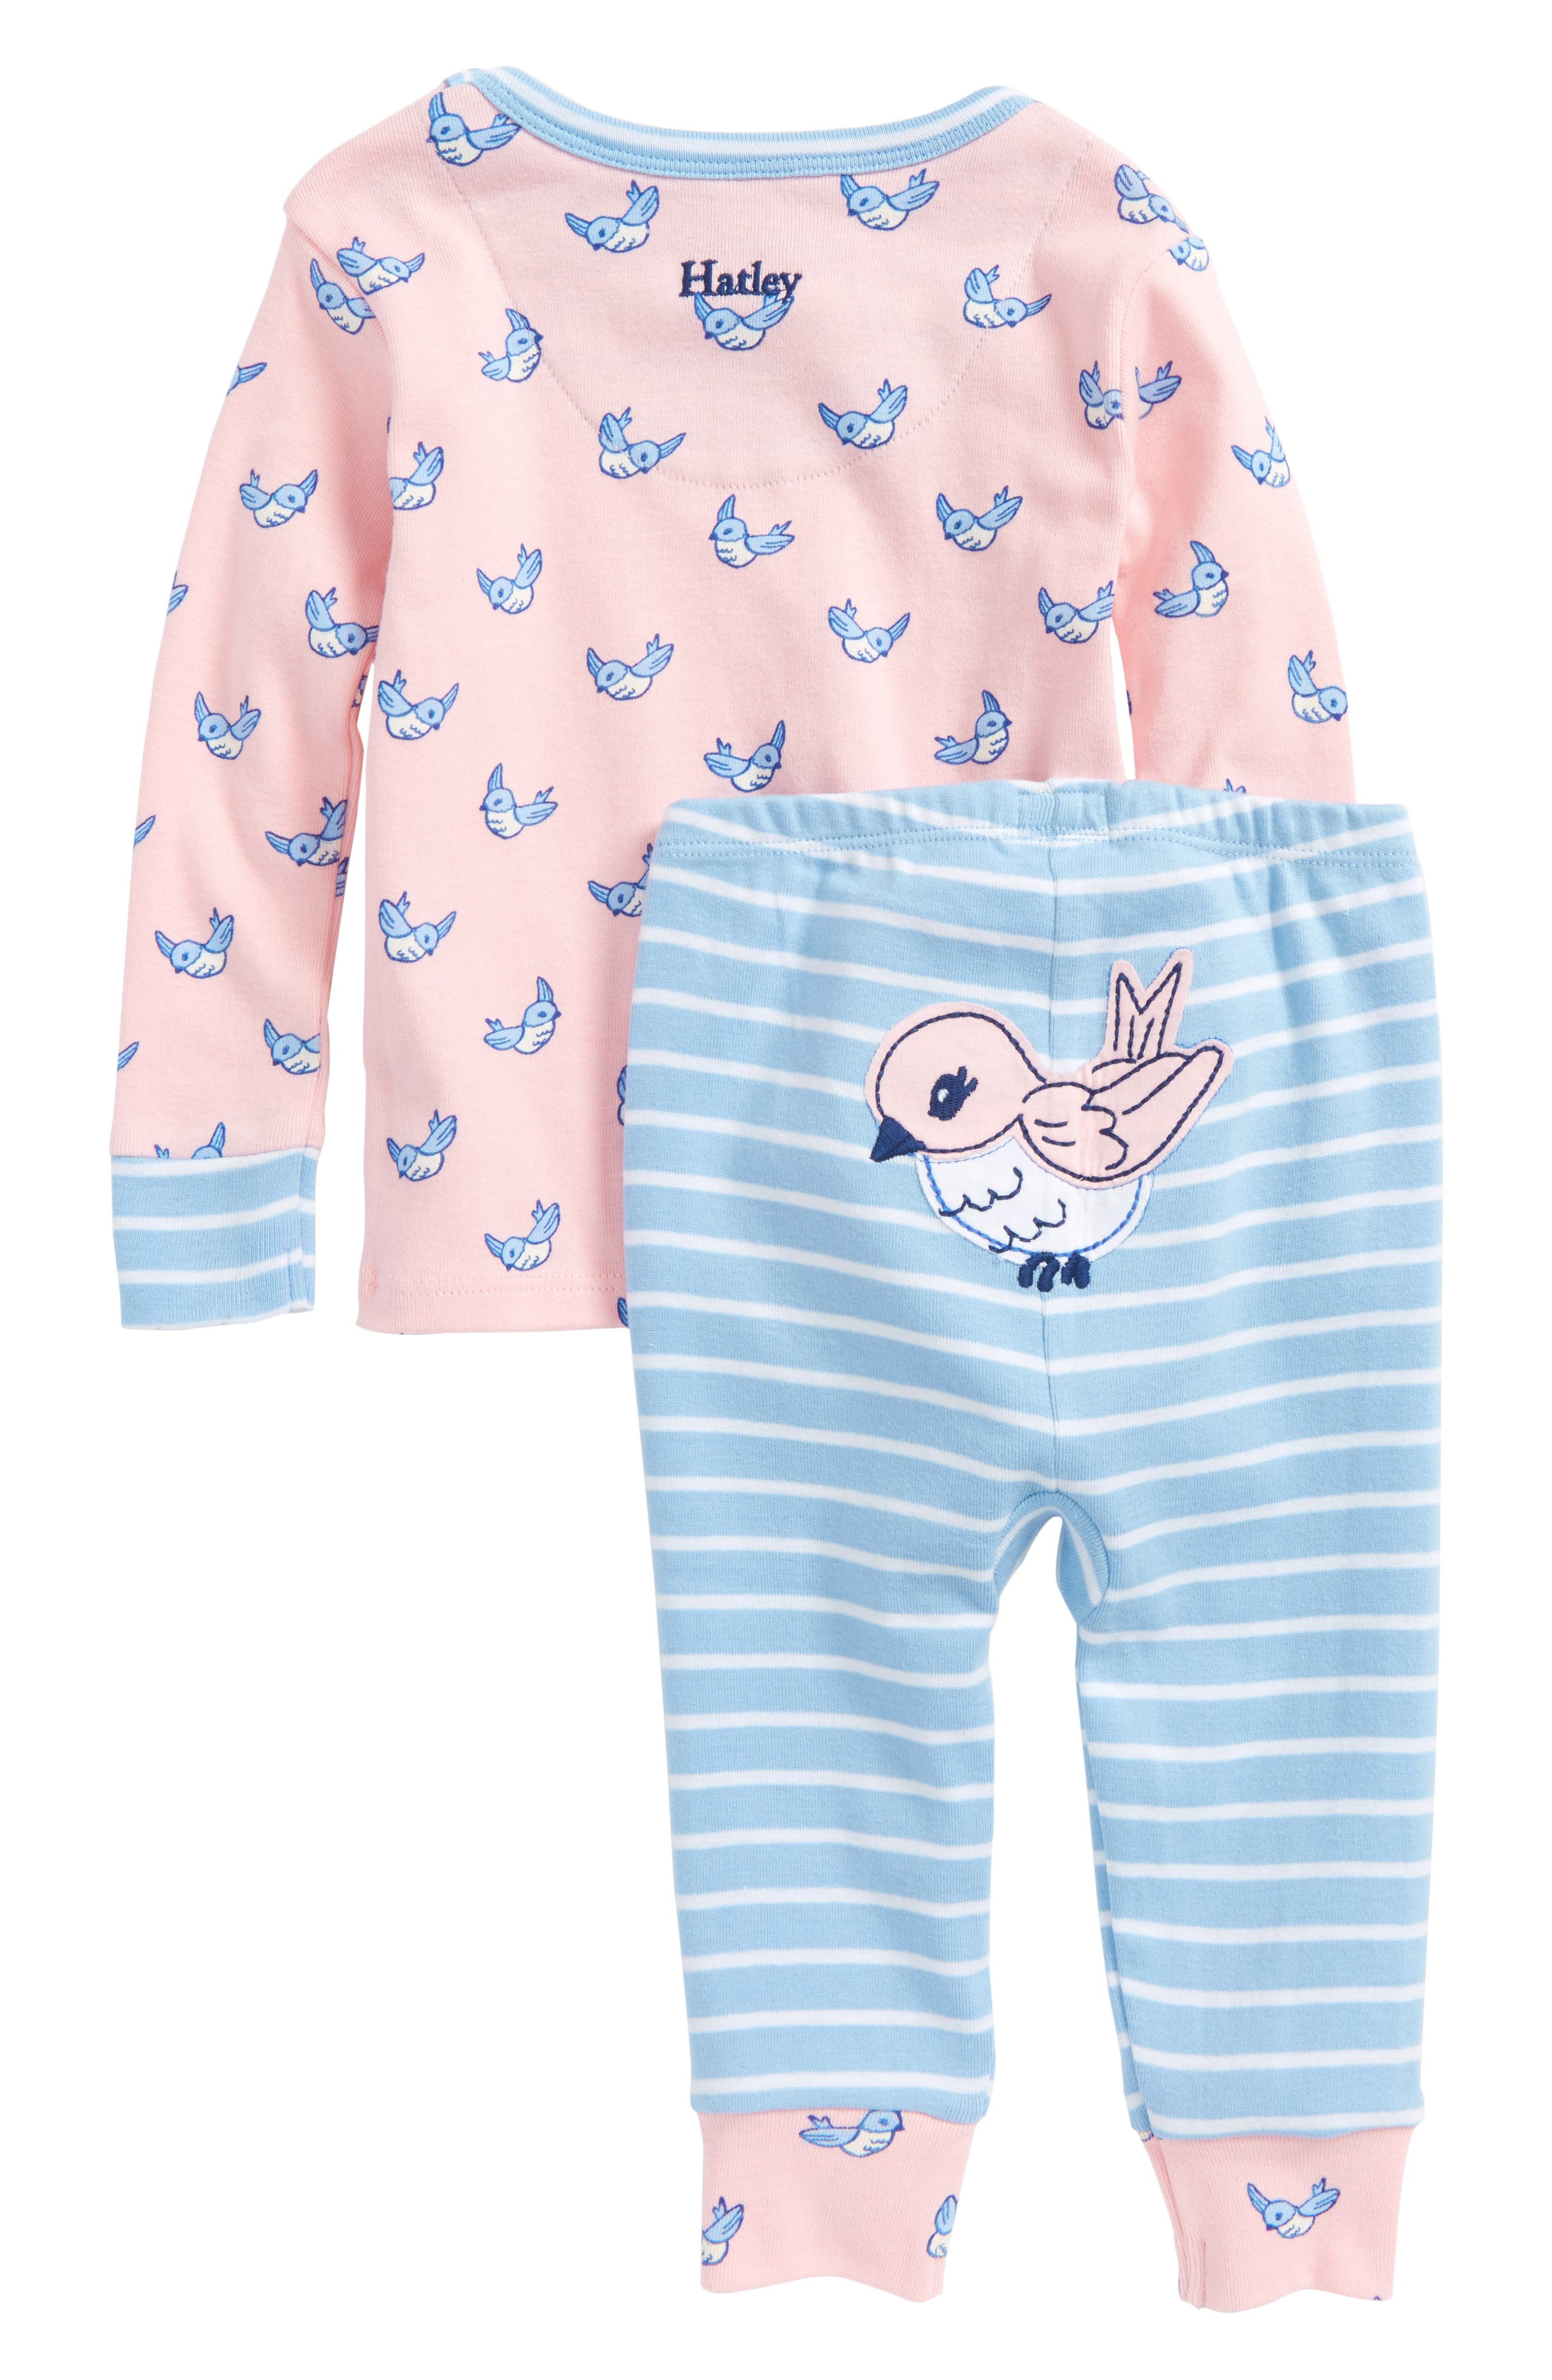 Fluttering Birds Organic Cotton Fitted Two-Piece Pajamas,                             Main thumbnail 1, color,                             Fluttering Birds